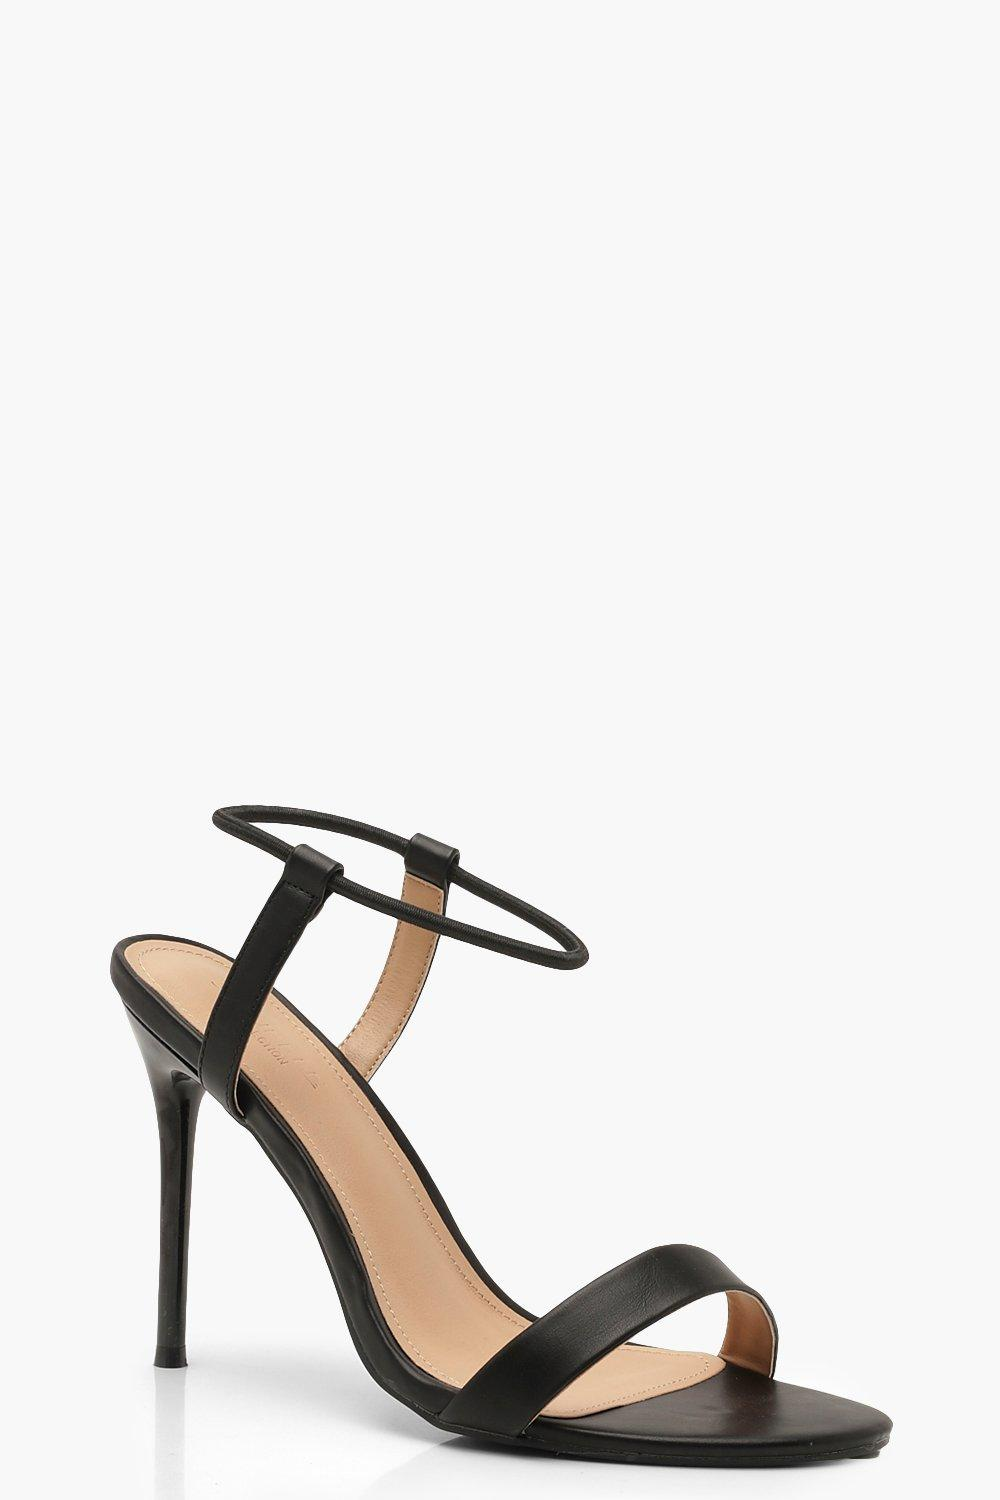 Halo Ankle Band Two Part Heels